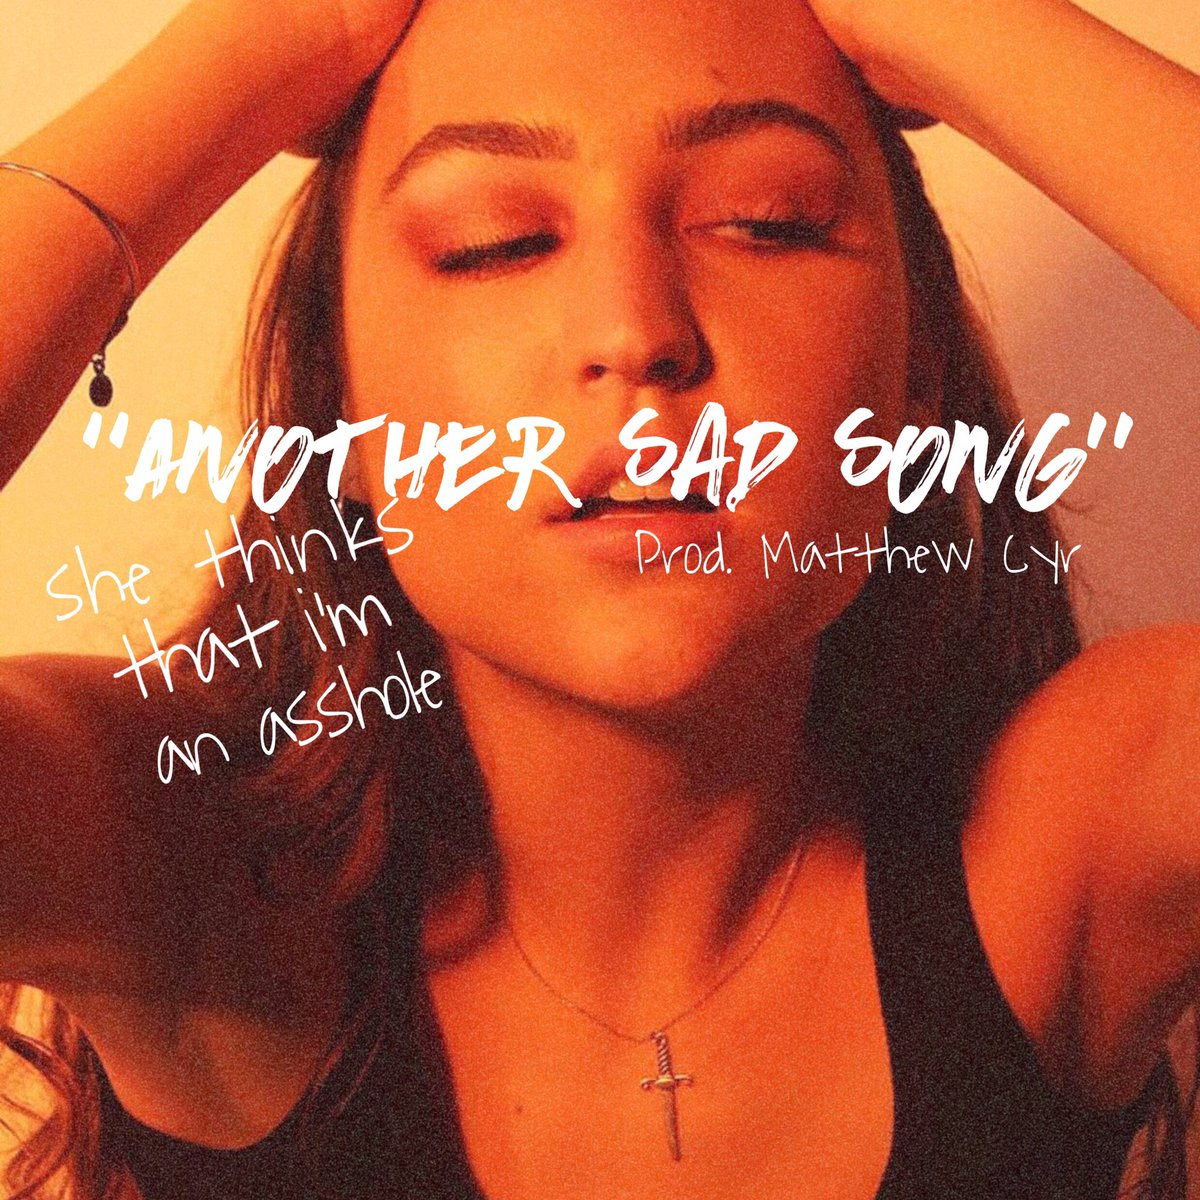 Listen Now: Zhero - Another Sad Song [prod. Matthew Cyr]